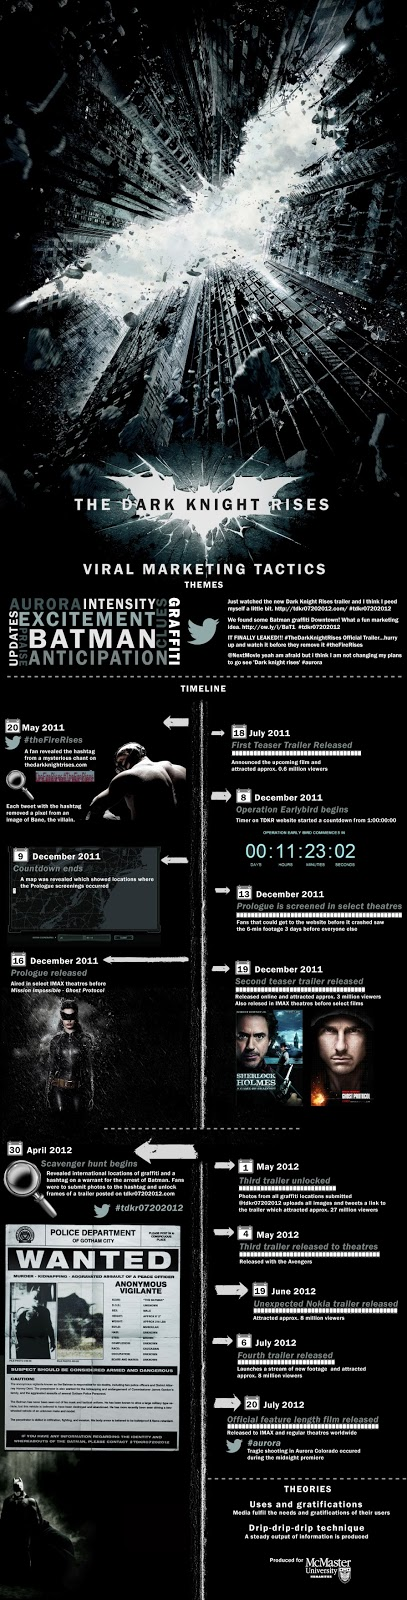 the dark knight rises,twitter